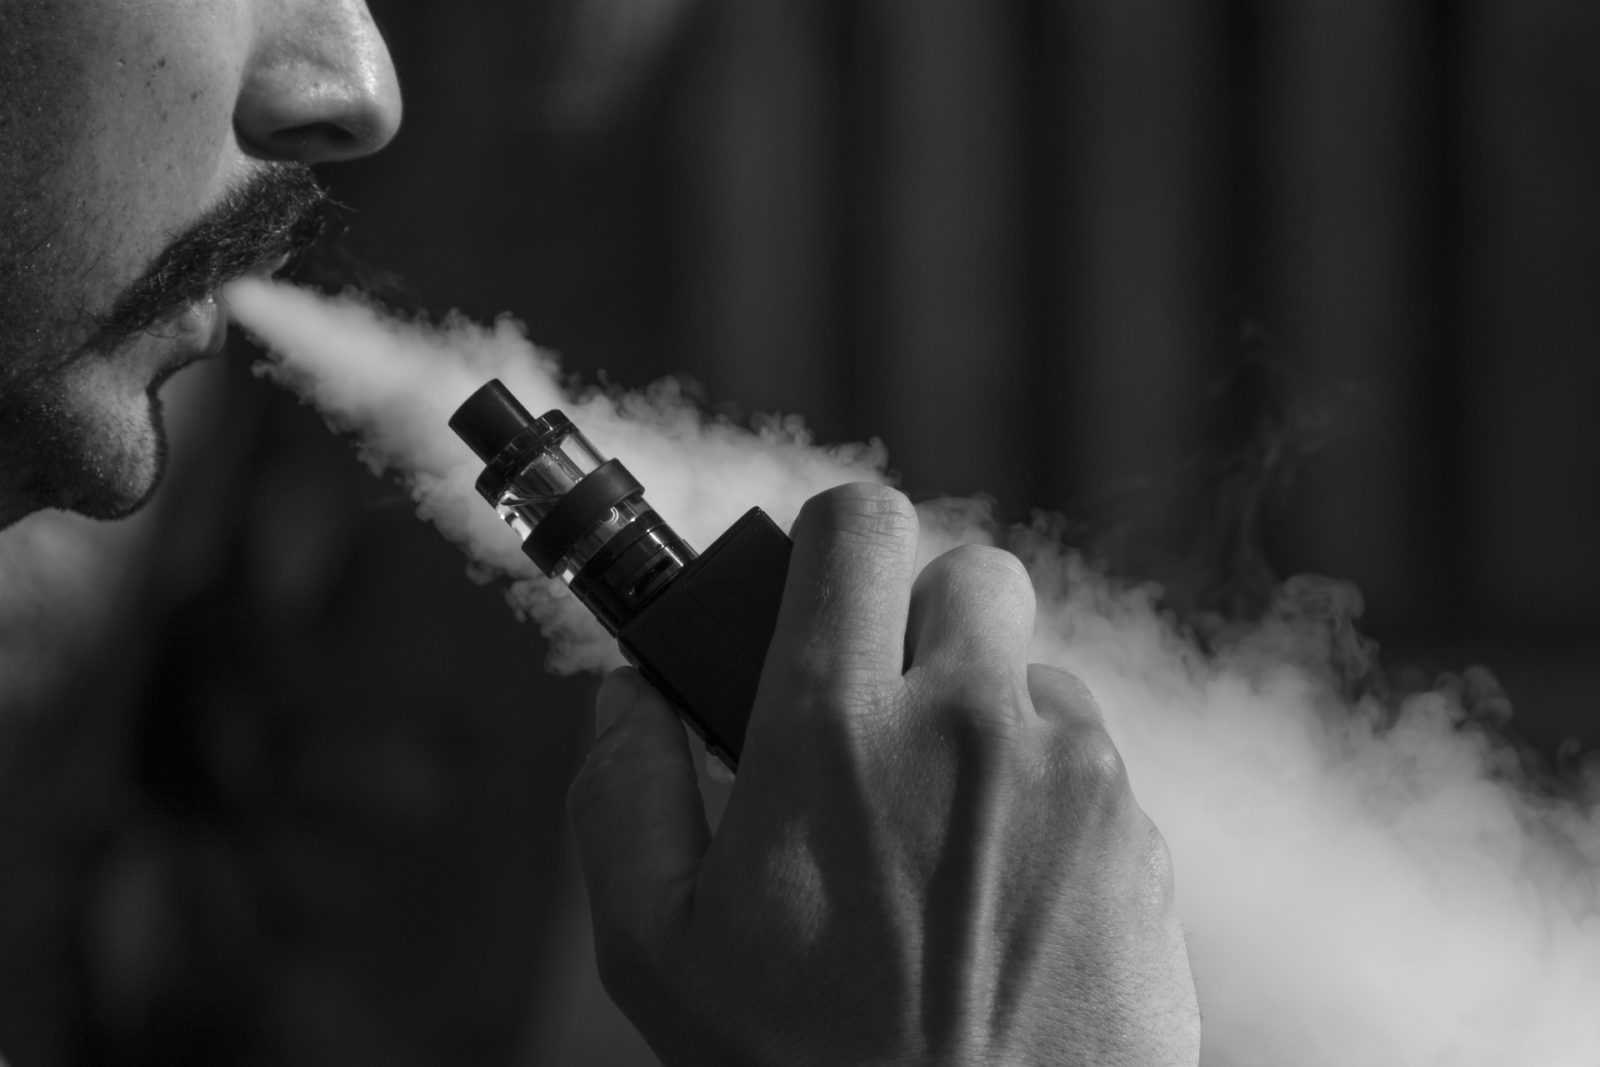 FDA Continues to Battle Teen Vaping Epidemic